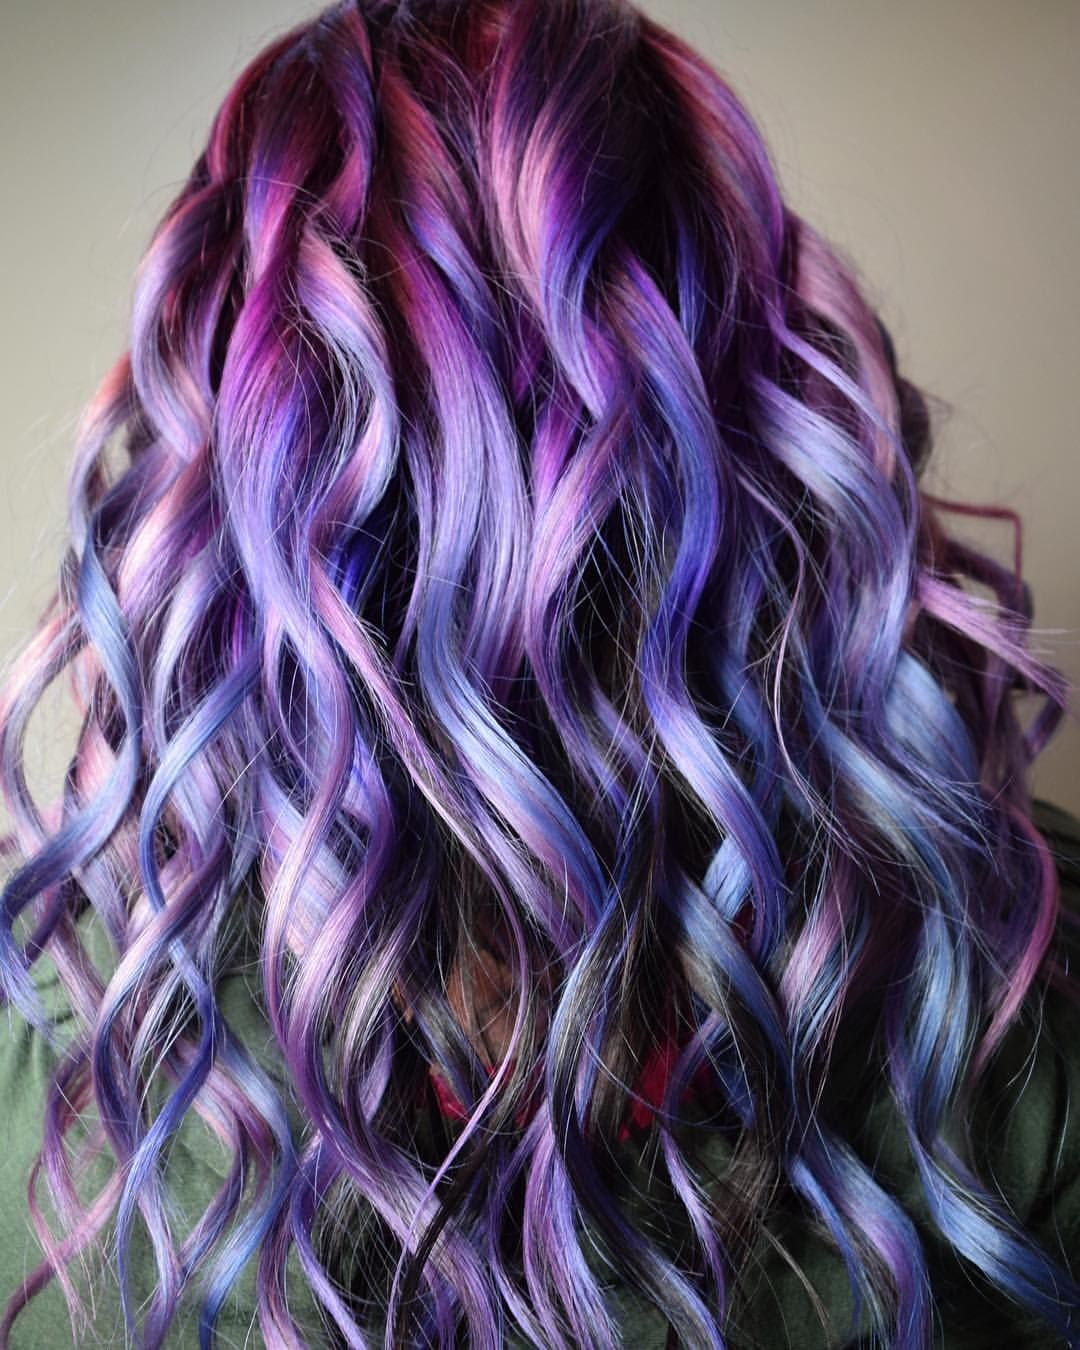 Pastel Purple Pink Blue And Black Hair Idea Inspiration How To Bright Fun Hair Color Guy Tang Mydentity Olaplex Inspiration Ide Ombre Hair Purple Hair Guy Tang